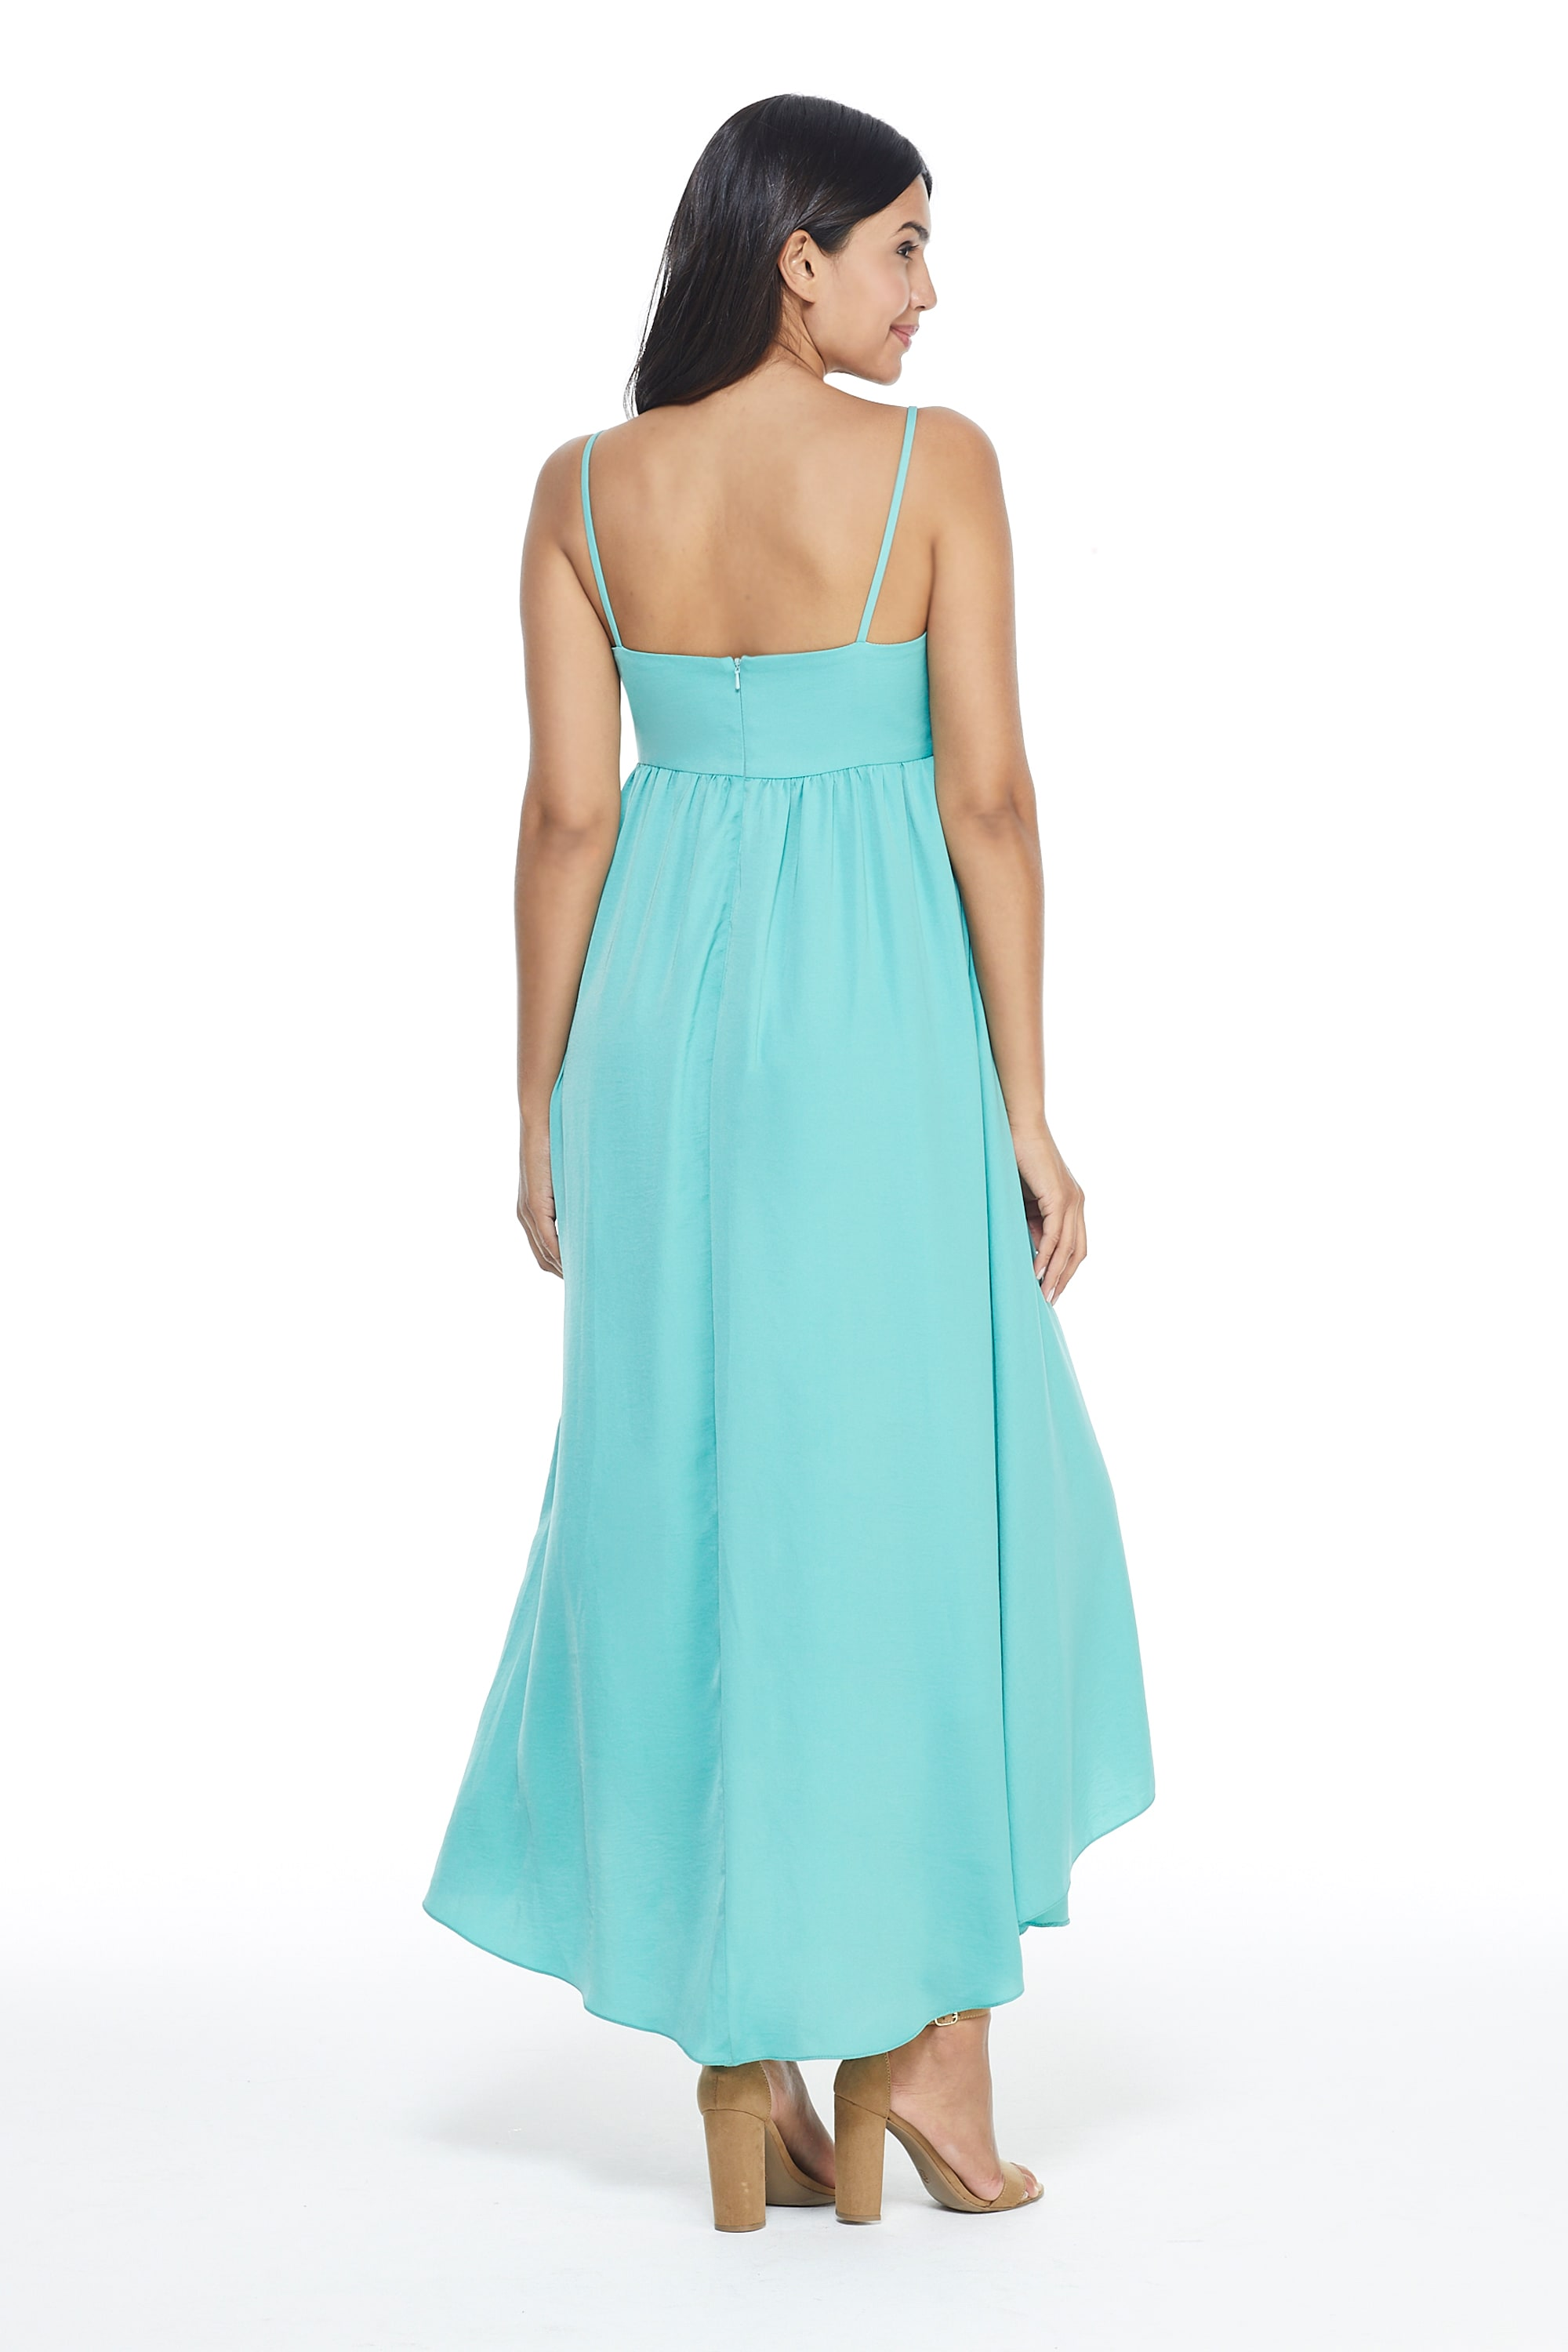 Knot Tie Midi Dress - Teal - Back